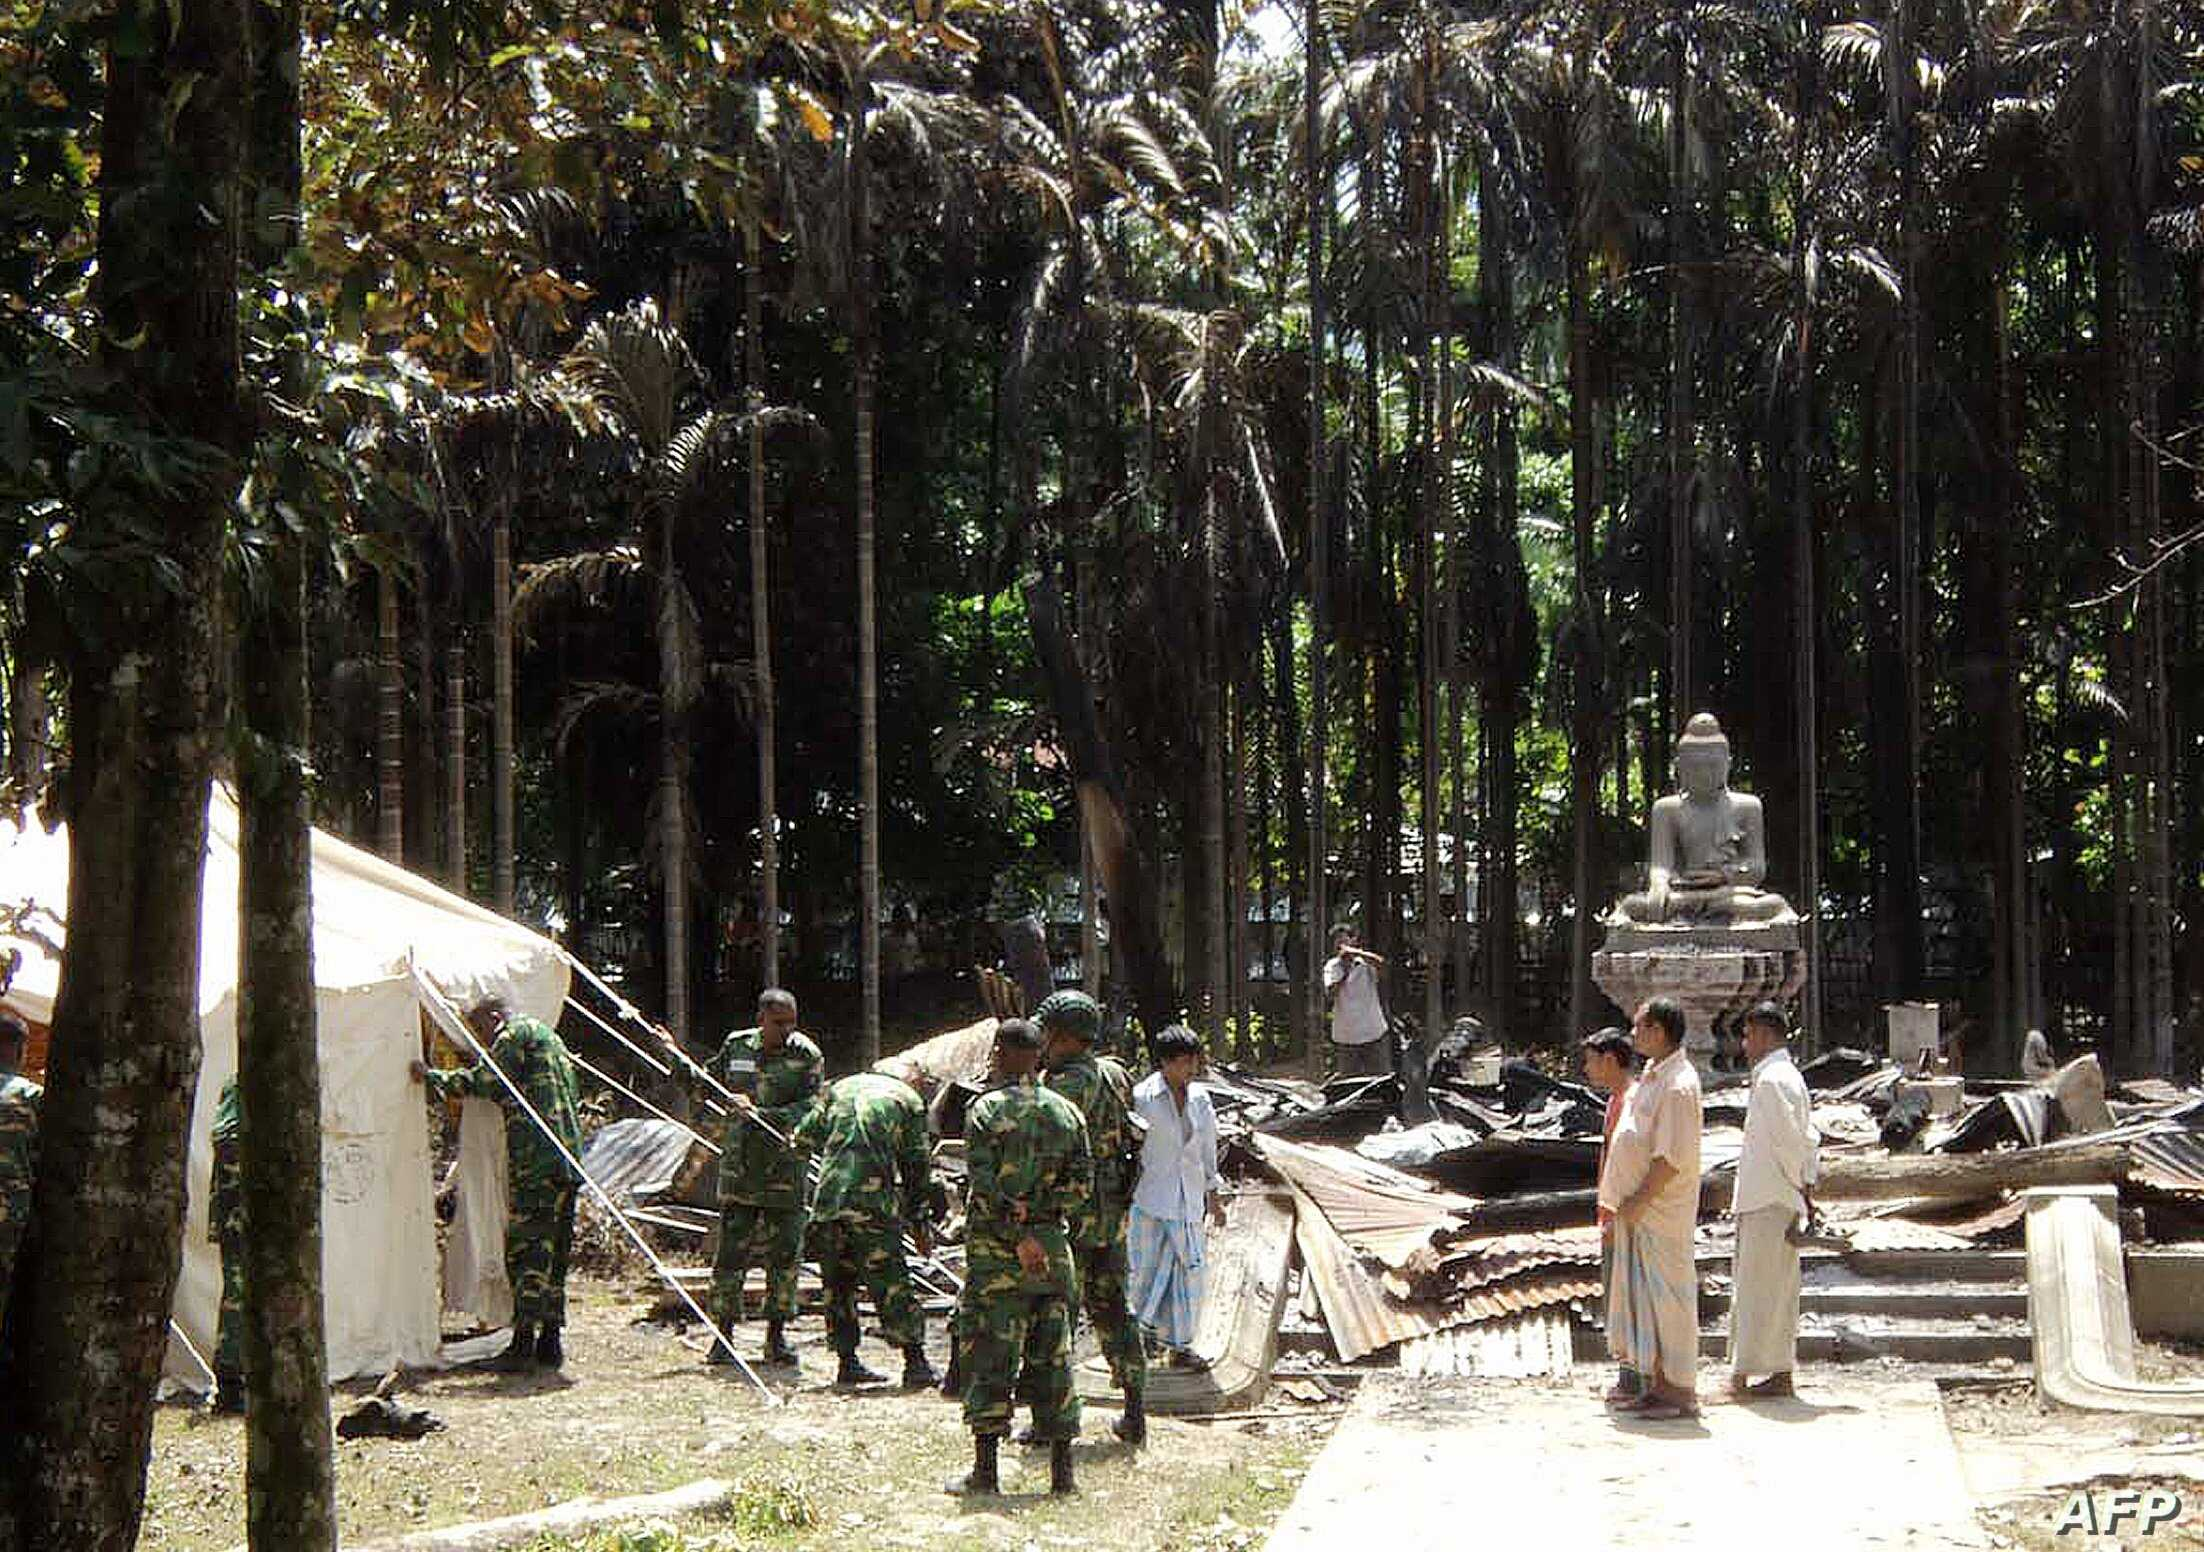 Soldiers from the Bangladesh Army erect tents at the torched Lal Ching Buddhist temple at Ramu, some 350 kilometres (216 miles) from the capital Dhaka, October 1, 2012.